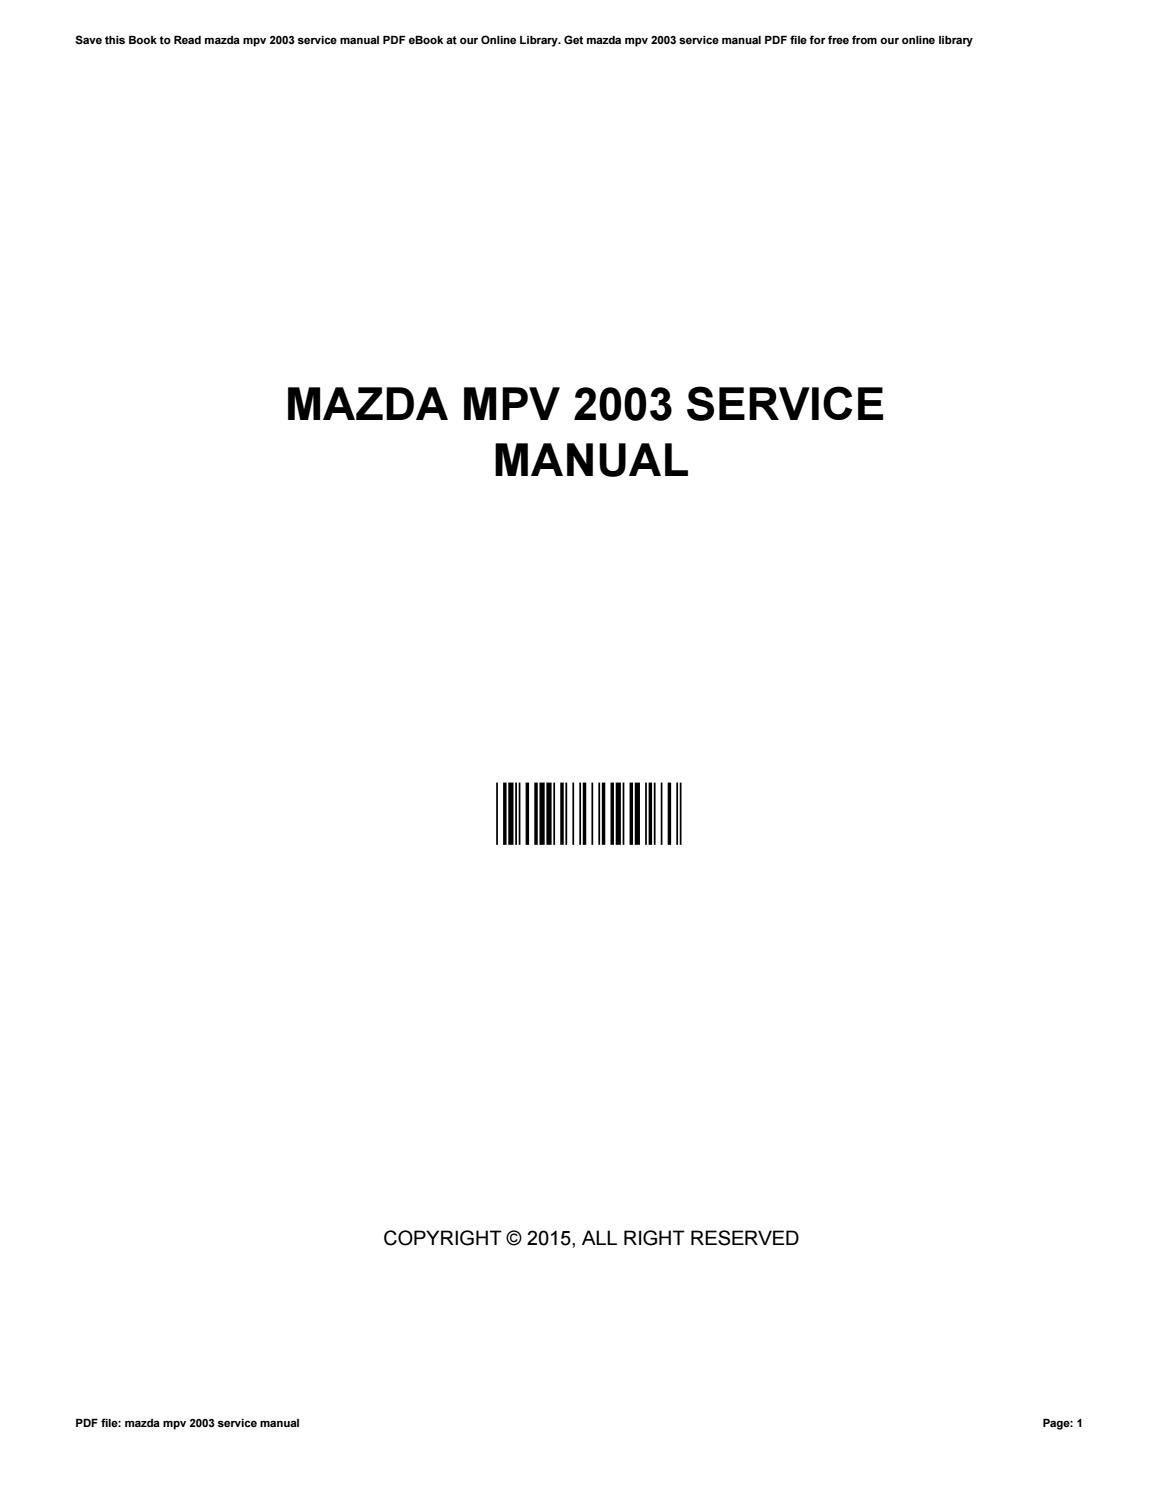 further ezgo manual besides maple chase 9600 thermostat wiring guide ebook furthermore dodge ram 1500 2002 manual furthermore 50wx4 pioneer manual furthermore buick rendezvous manual ebook besides ford 6700 manual ebook besides  likewise mazda 2 service manual 2015 ebook moreover manual ford f 150 ebook also download repair manual fz28. on ford f service manual pd gas fuse box diagram explained wiring diagrams panel smart schematic electrical systems trusted enthusiast mazda schematics layout interior circuit for 2003 f250 7 3 l lariat